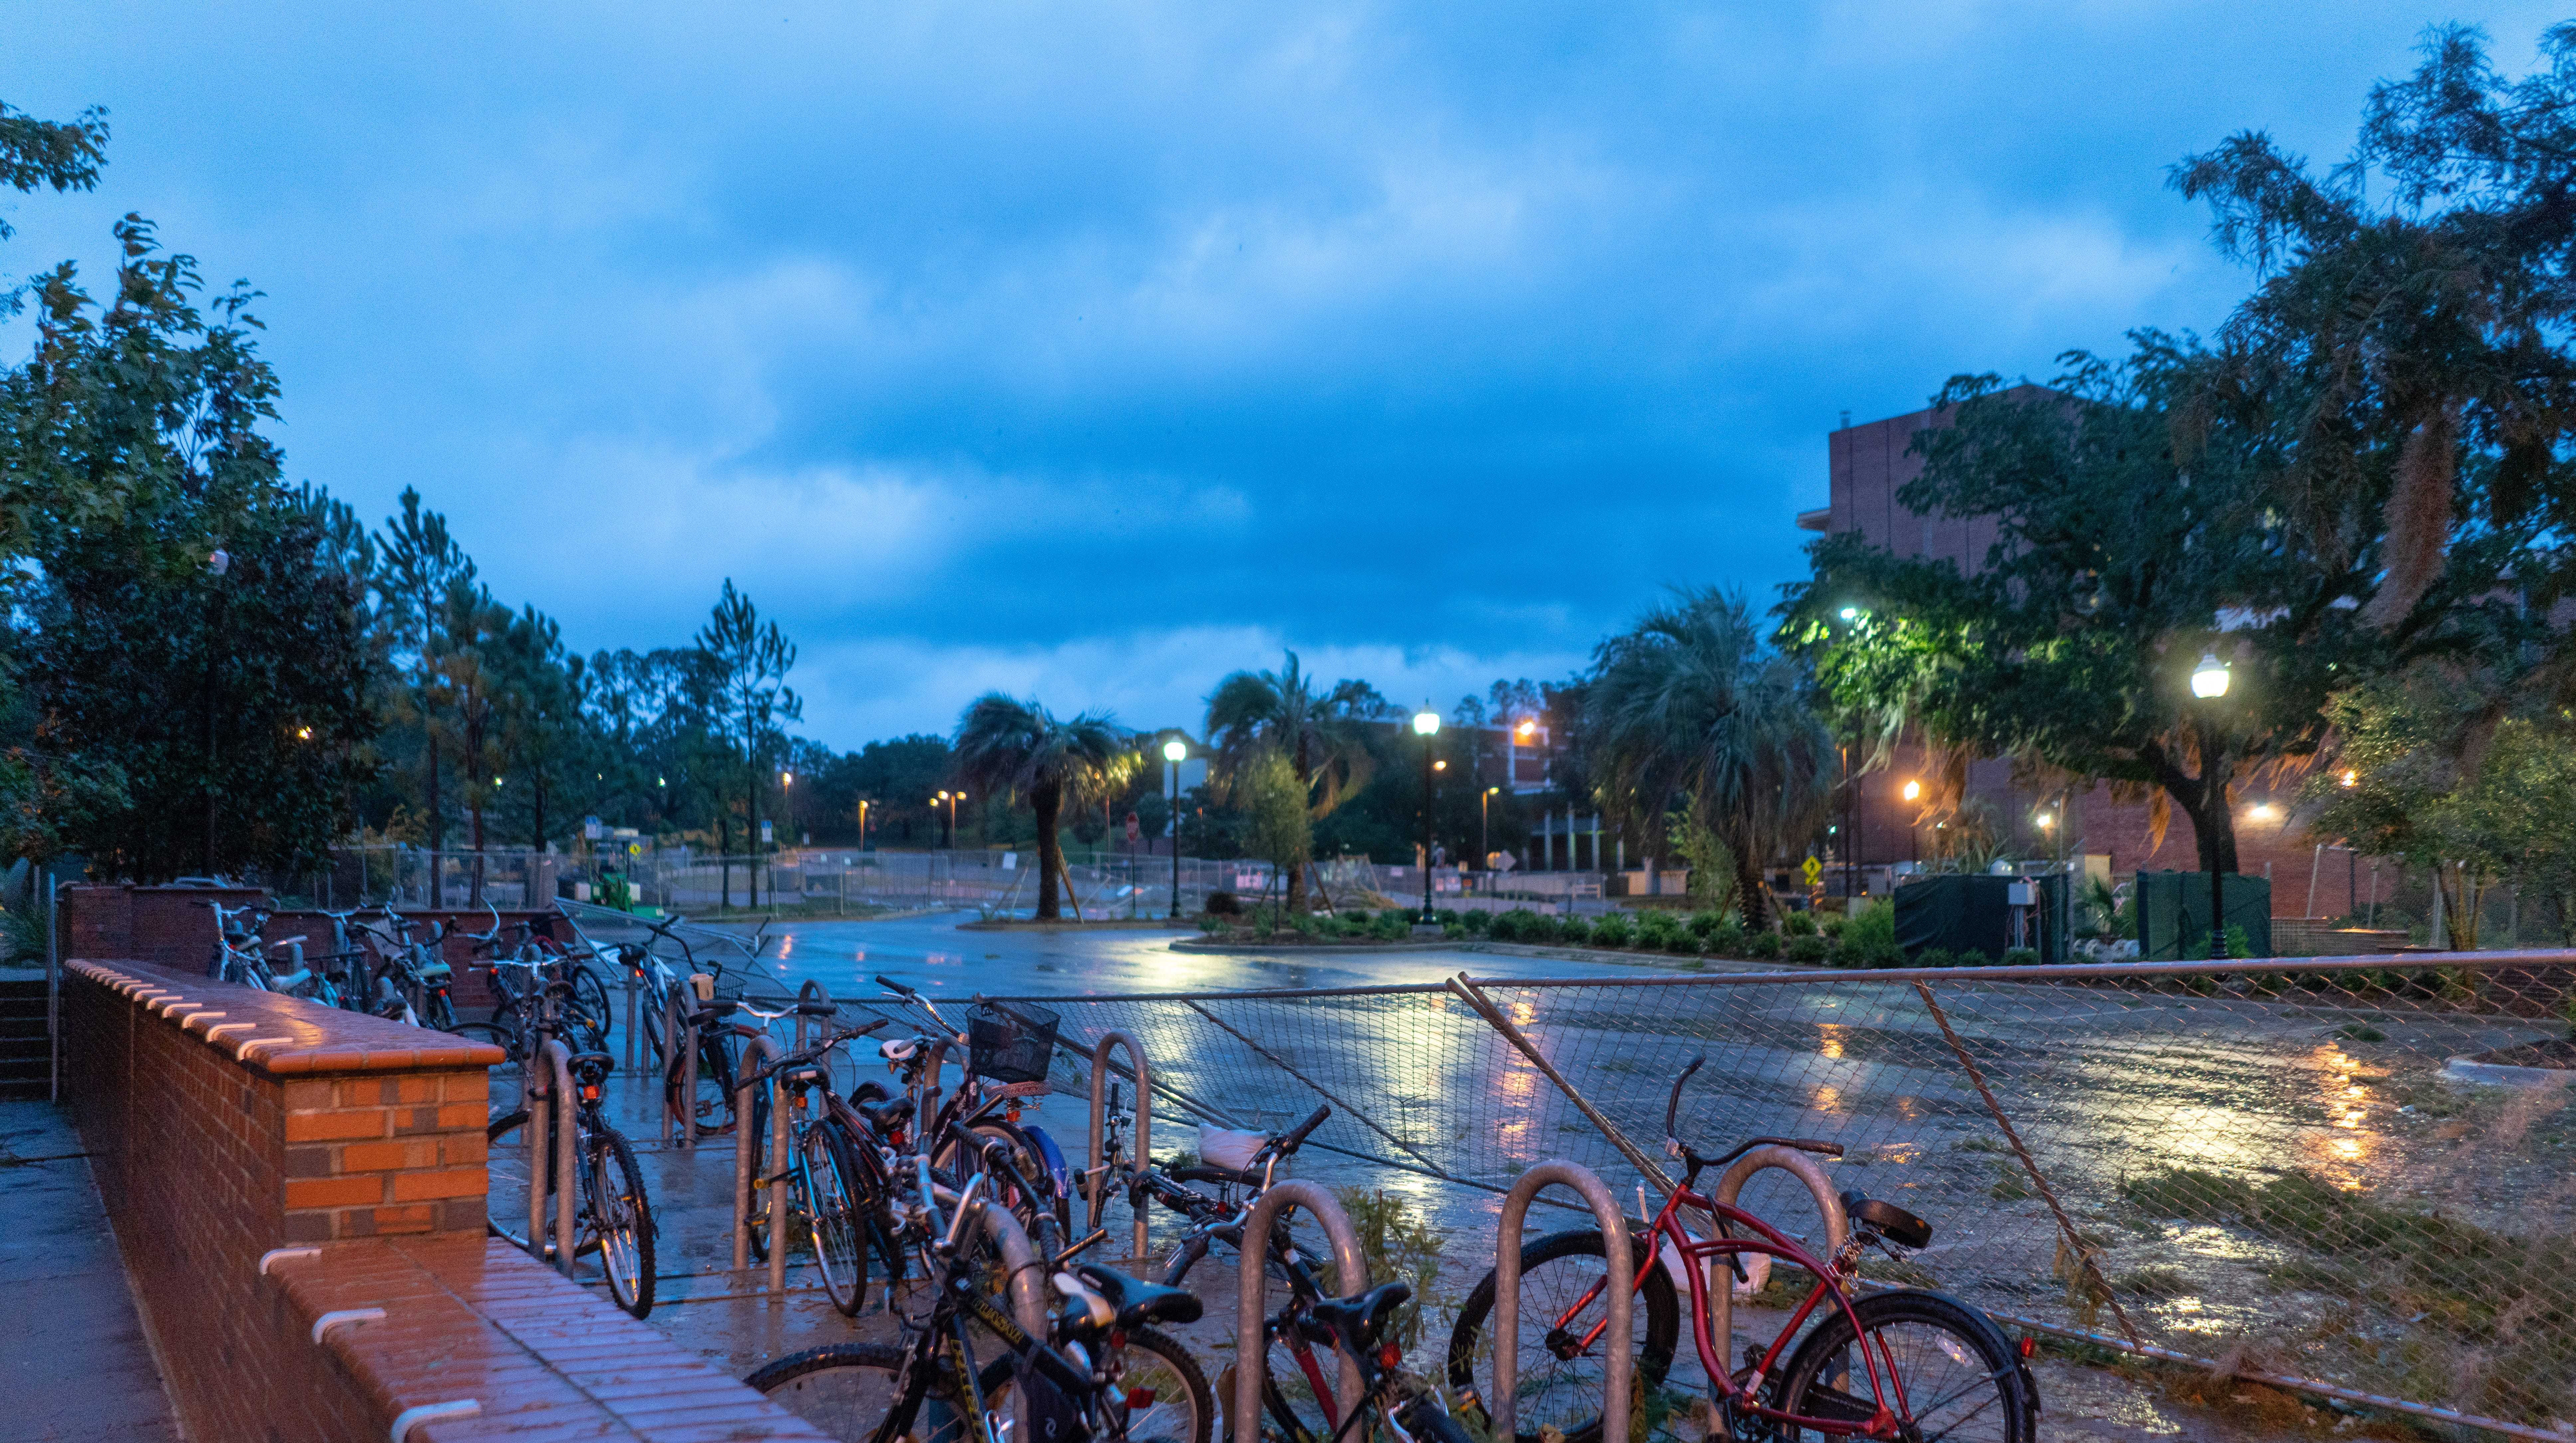 FSU Athletics' schedule was interrupted by the arrival of hurricane Michael.